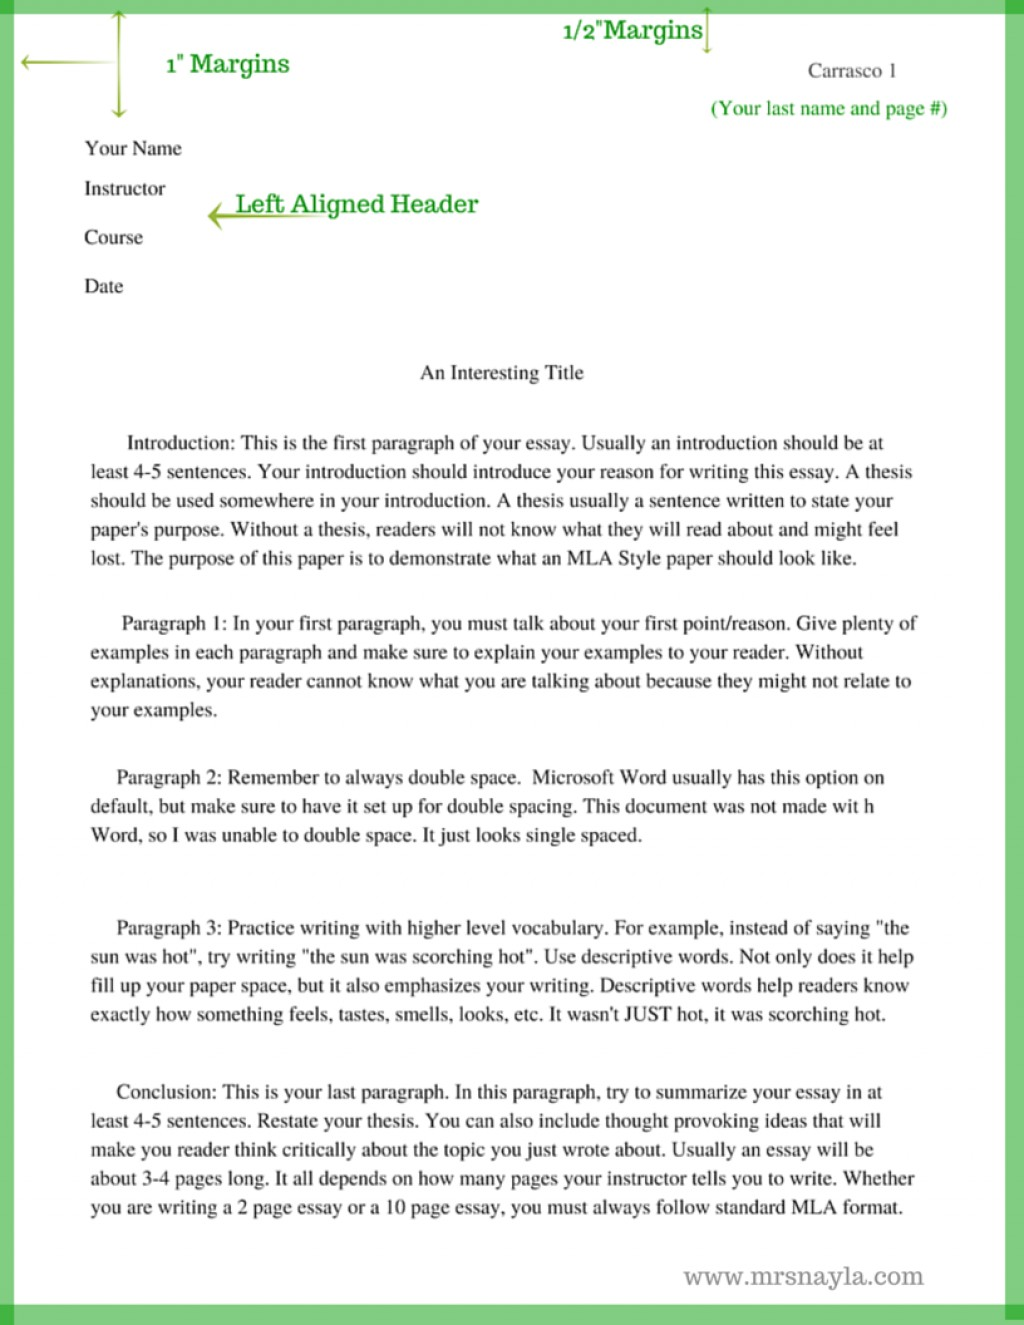 015 Essay Example Mla Style Sample Format Www Mrsnayla Com Writing Pinterest English Best Outline For College Large